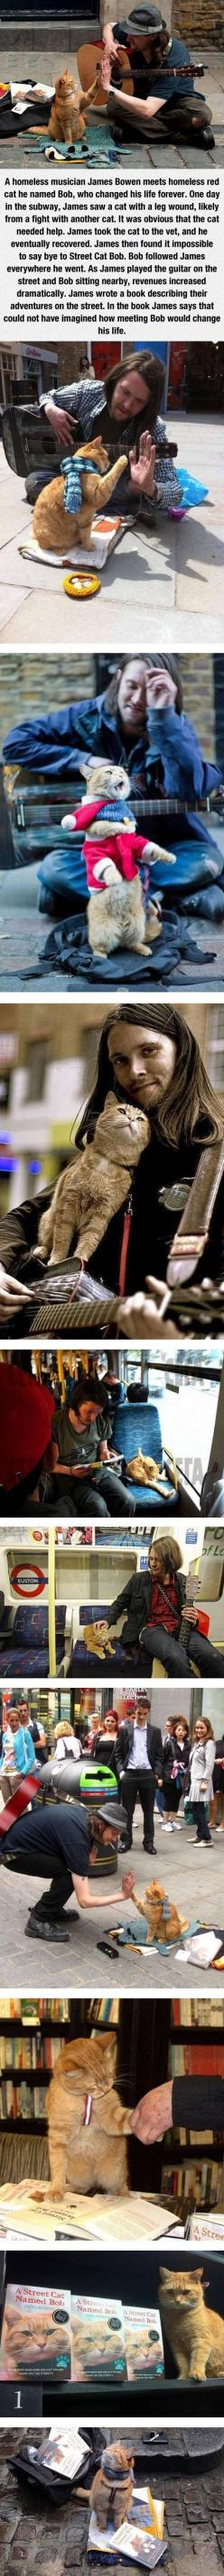 A Homeless Musician And His Cat - This is awesome! :): Cool Cats, Cats Pick, Homeless Musician, Story Musician, Eyes Leak, Cat Cat, Man Cat, Animal